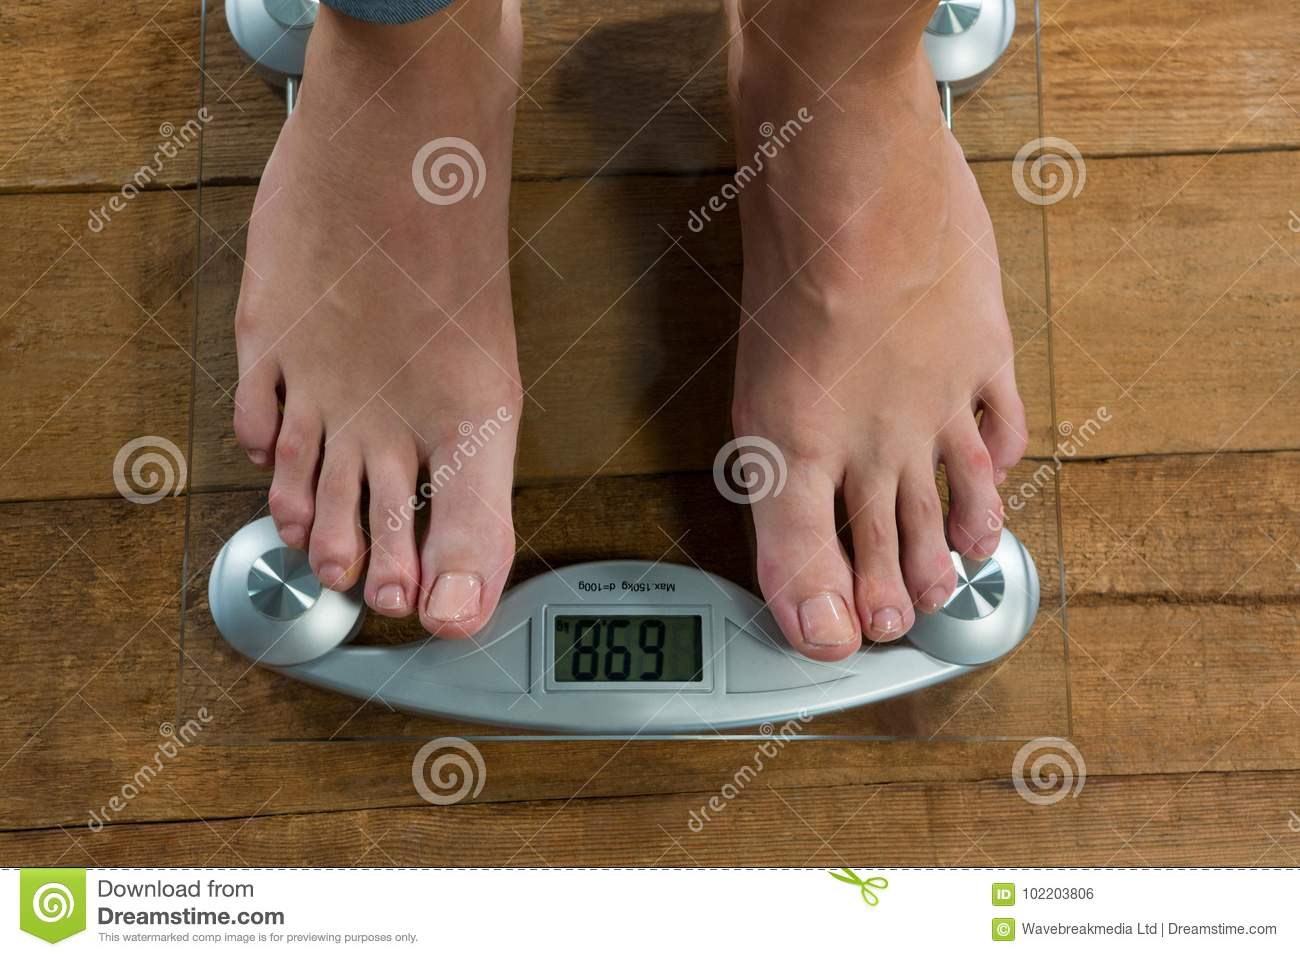 Woman checking her weight on a weighing machine